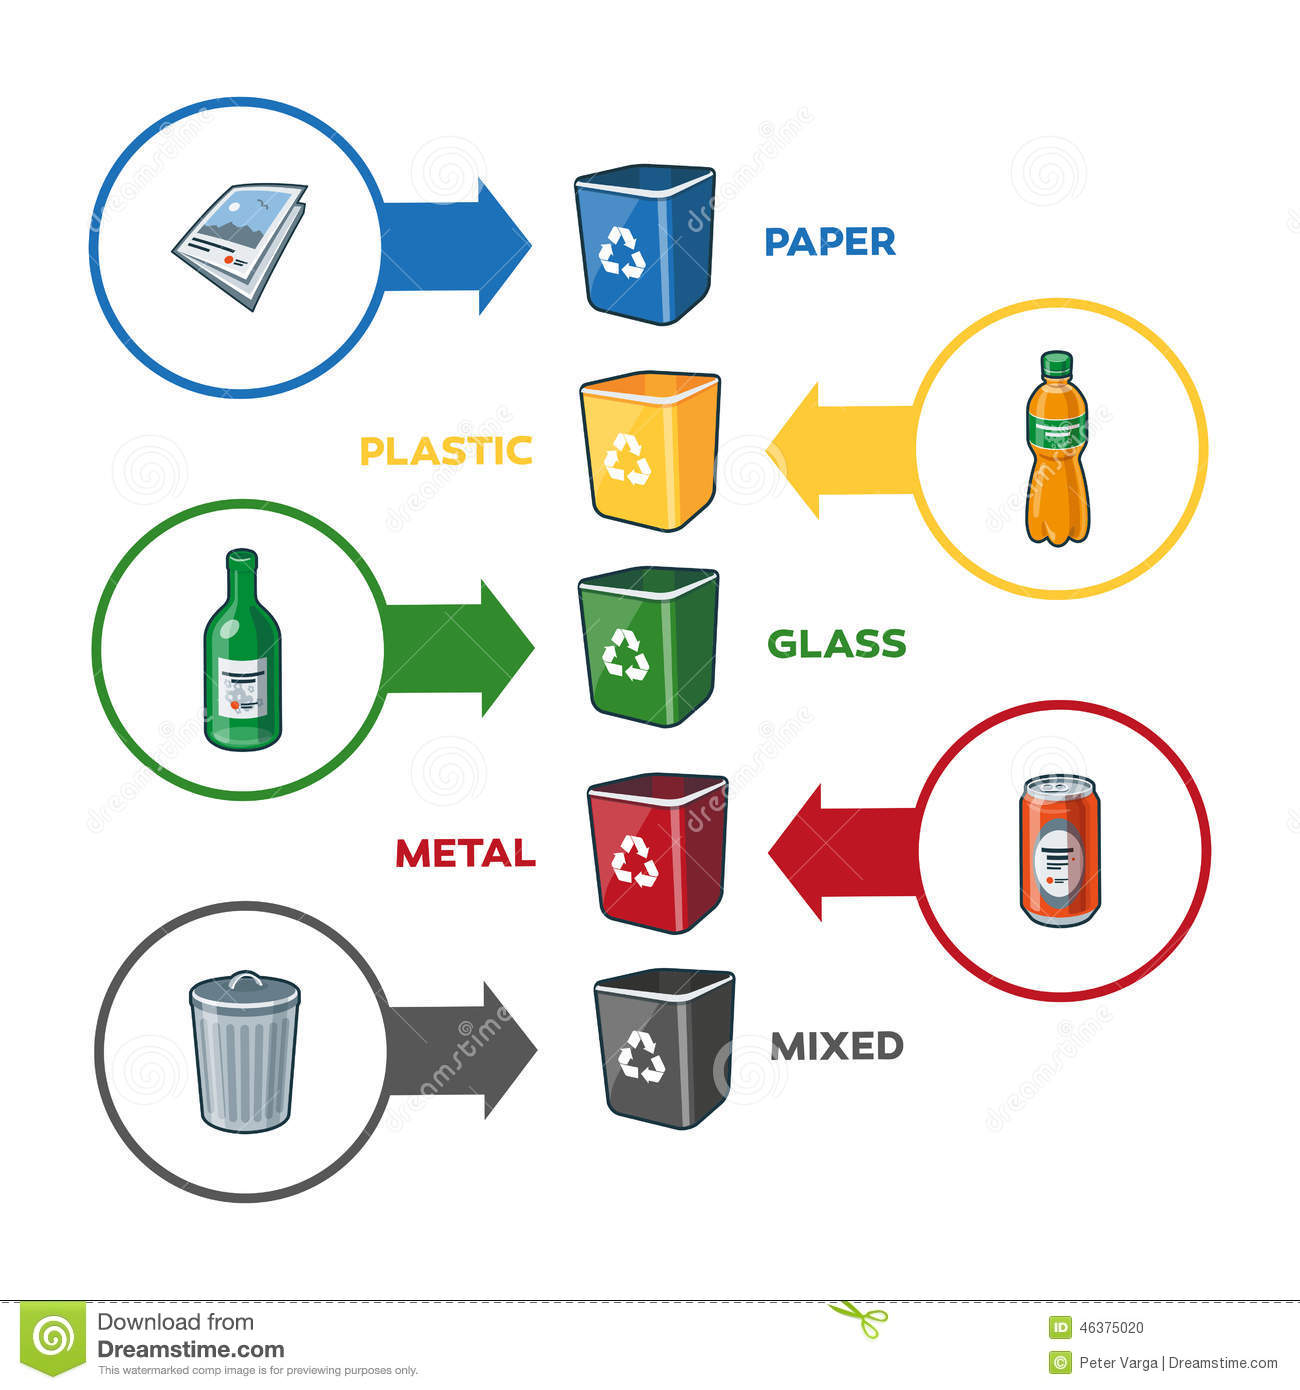 Interesting Research Paper Topics furthermore Intellectual Growth together with Writing Protocol also Stock Illustratie Het Recycling Van Bakken Voor Document Plastic Glas Metaal Gemengd Afval Image46375020 furthermore Lavori Con L Unci to Centrini Con Motivo Ad Ananas 2 1837157. on schema paper